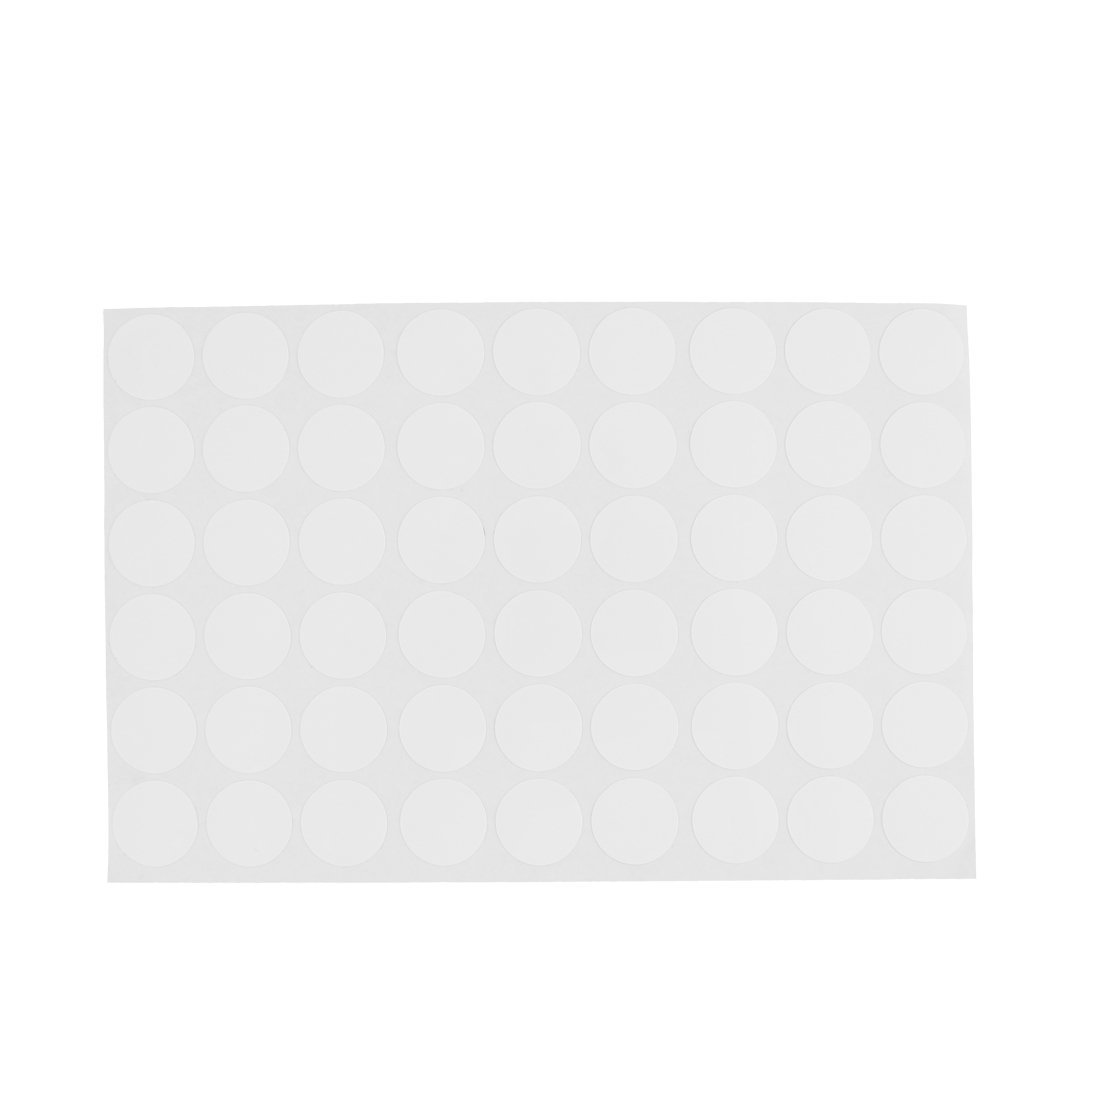 Hot Sale Wardrobe Cupboard Self-adhesive Screw Covers Caps Stickers 54 in 1 Screw Hole Sticker Dust CoverHot Sale Wardrobe Cupboard Self-adhesive Screw Covers Caps Stickers 54 in 1 Screw Hole Sticker Dust Cover